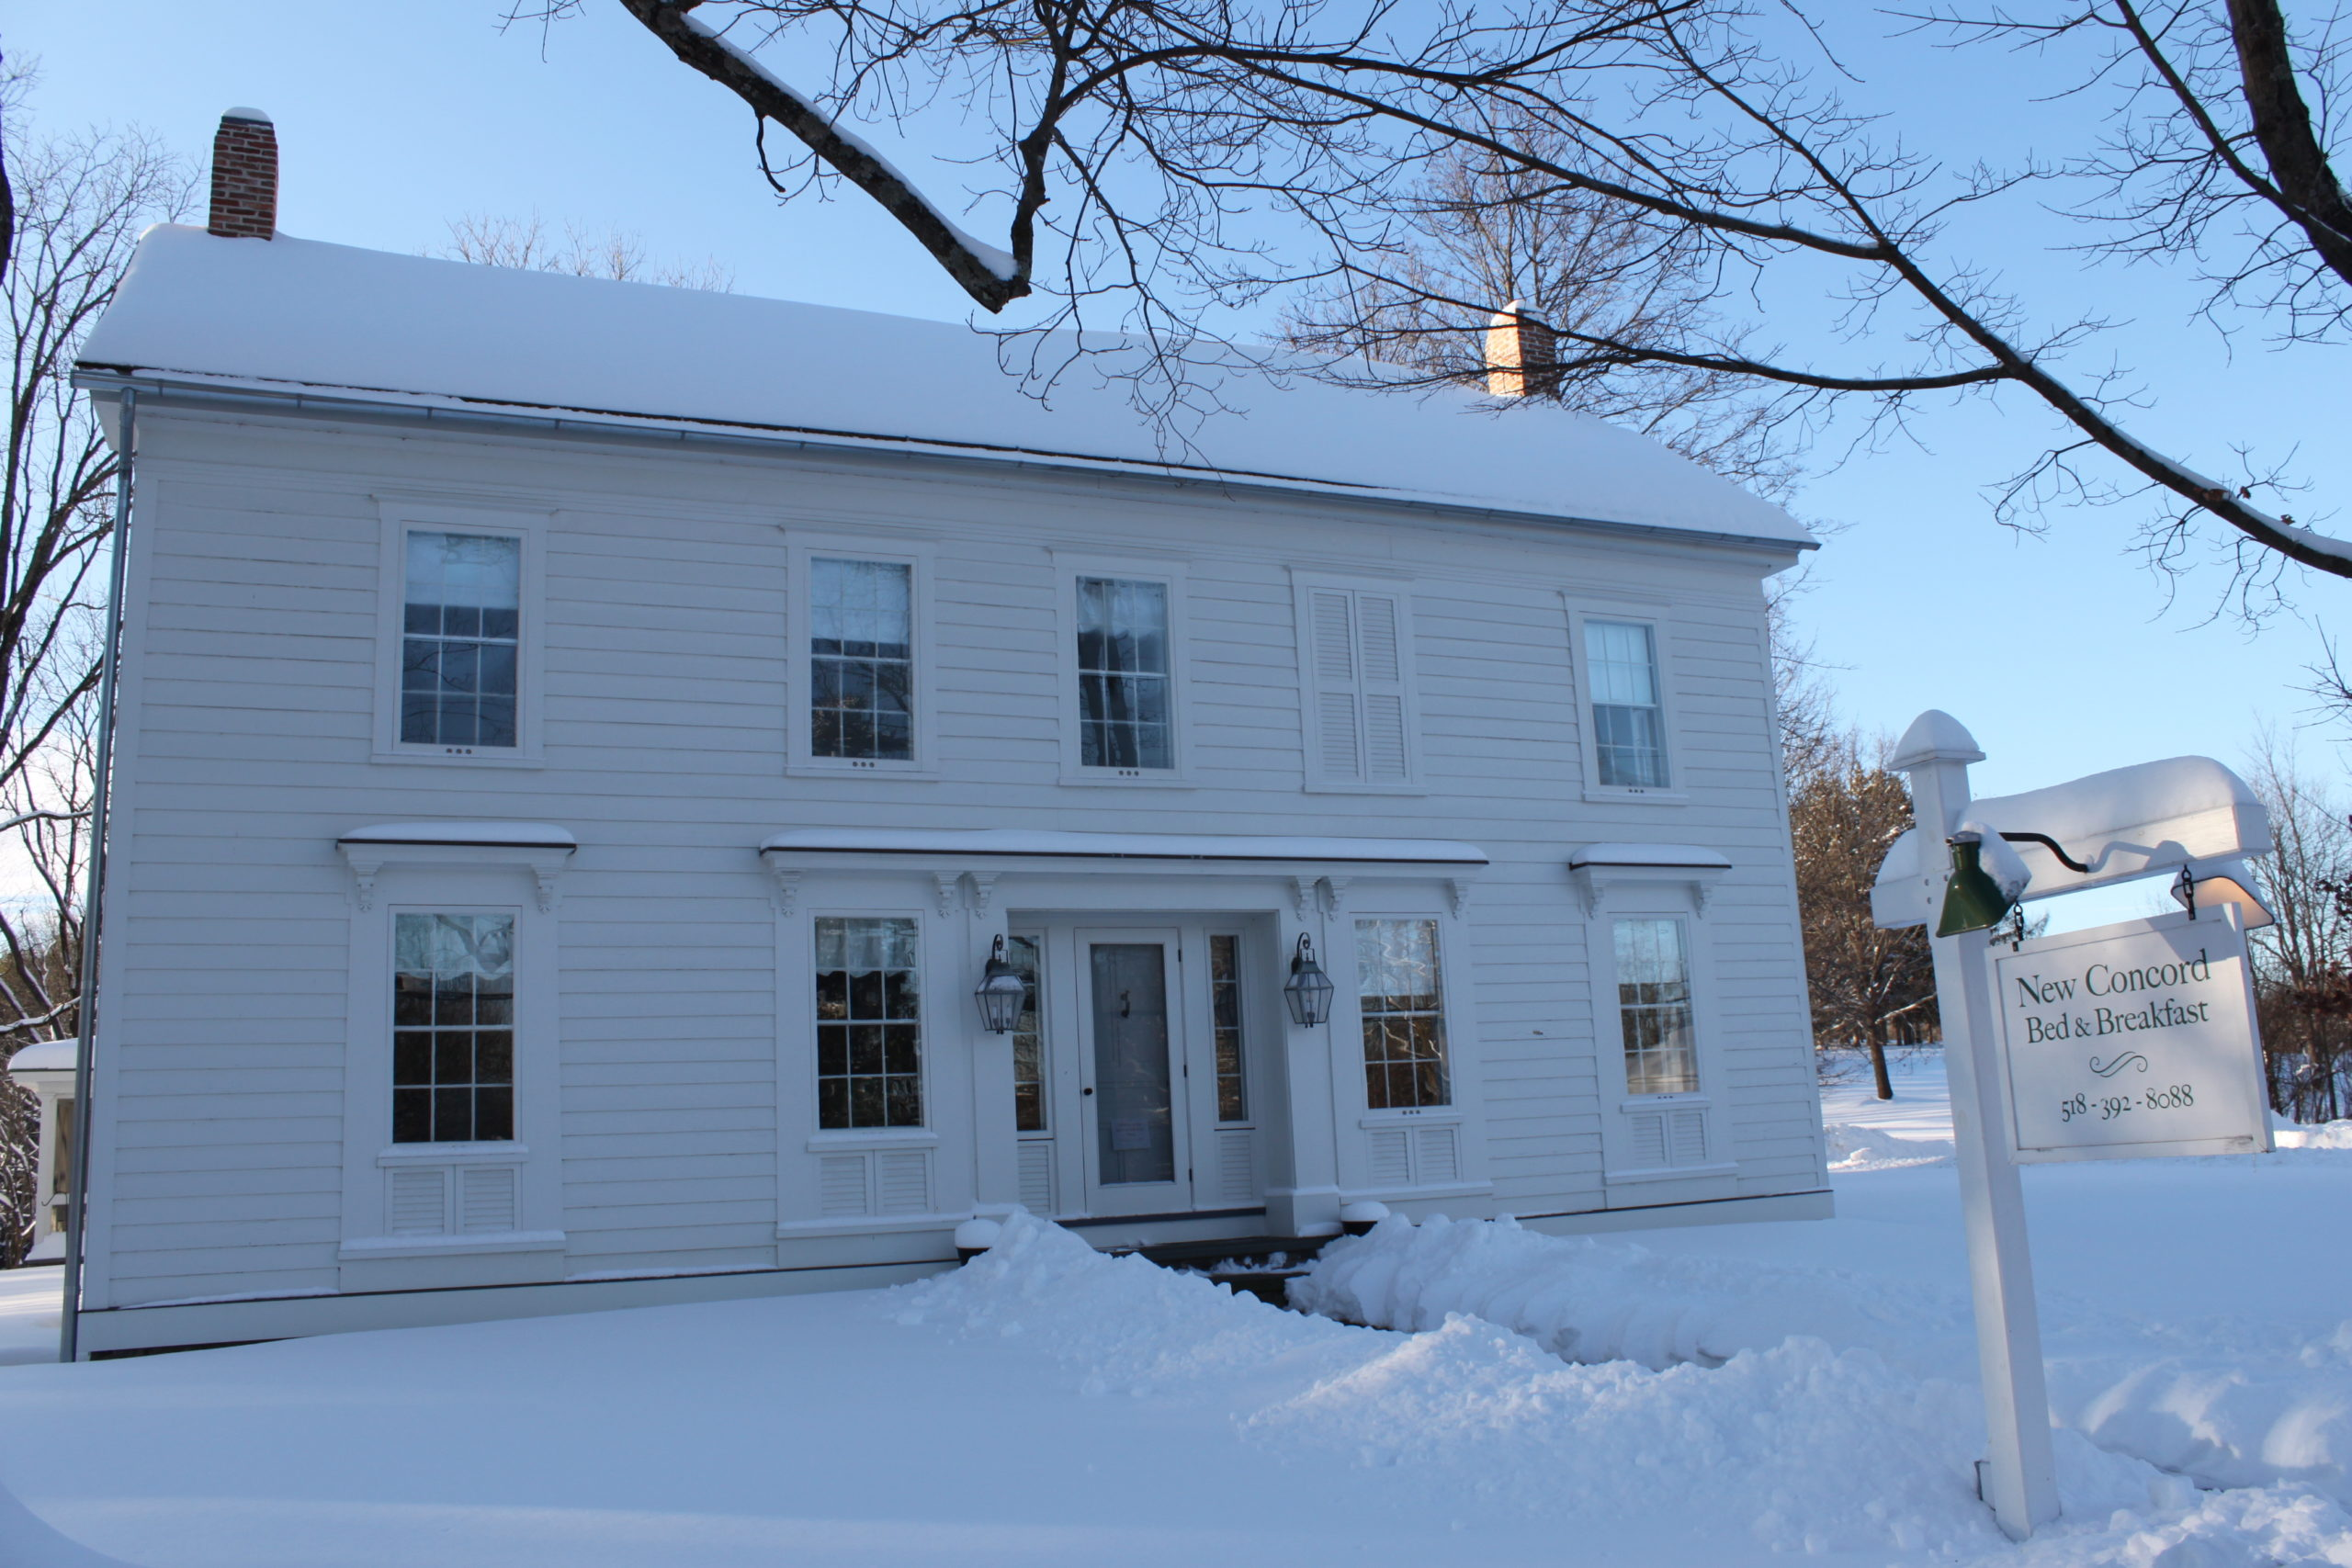 Snow at New Concord Bed & Breakfast